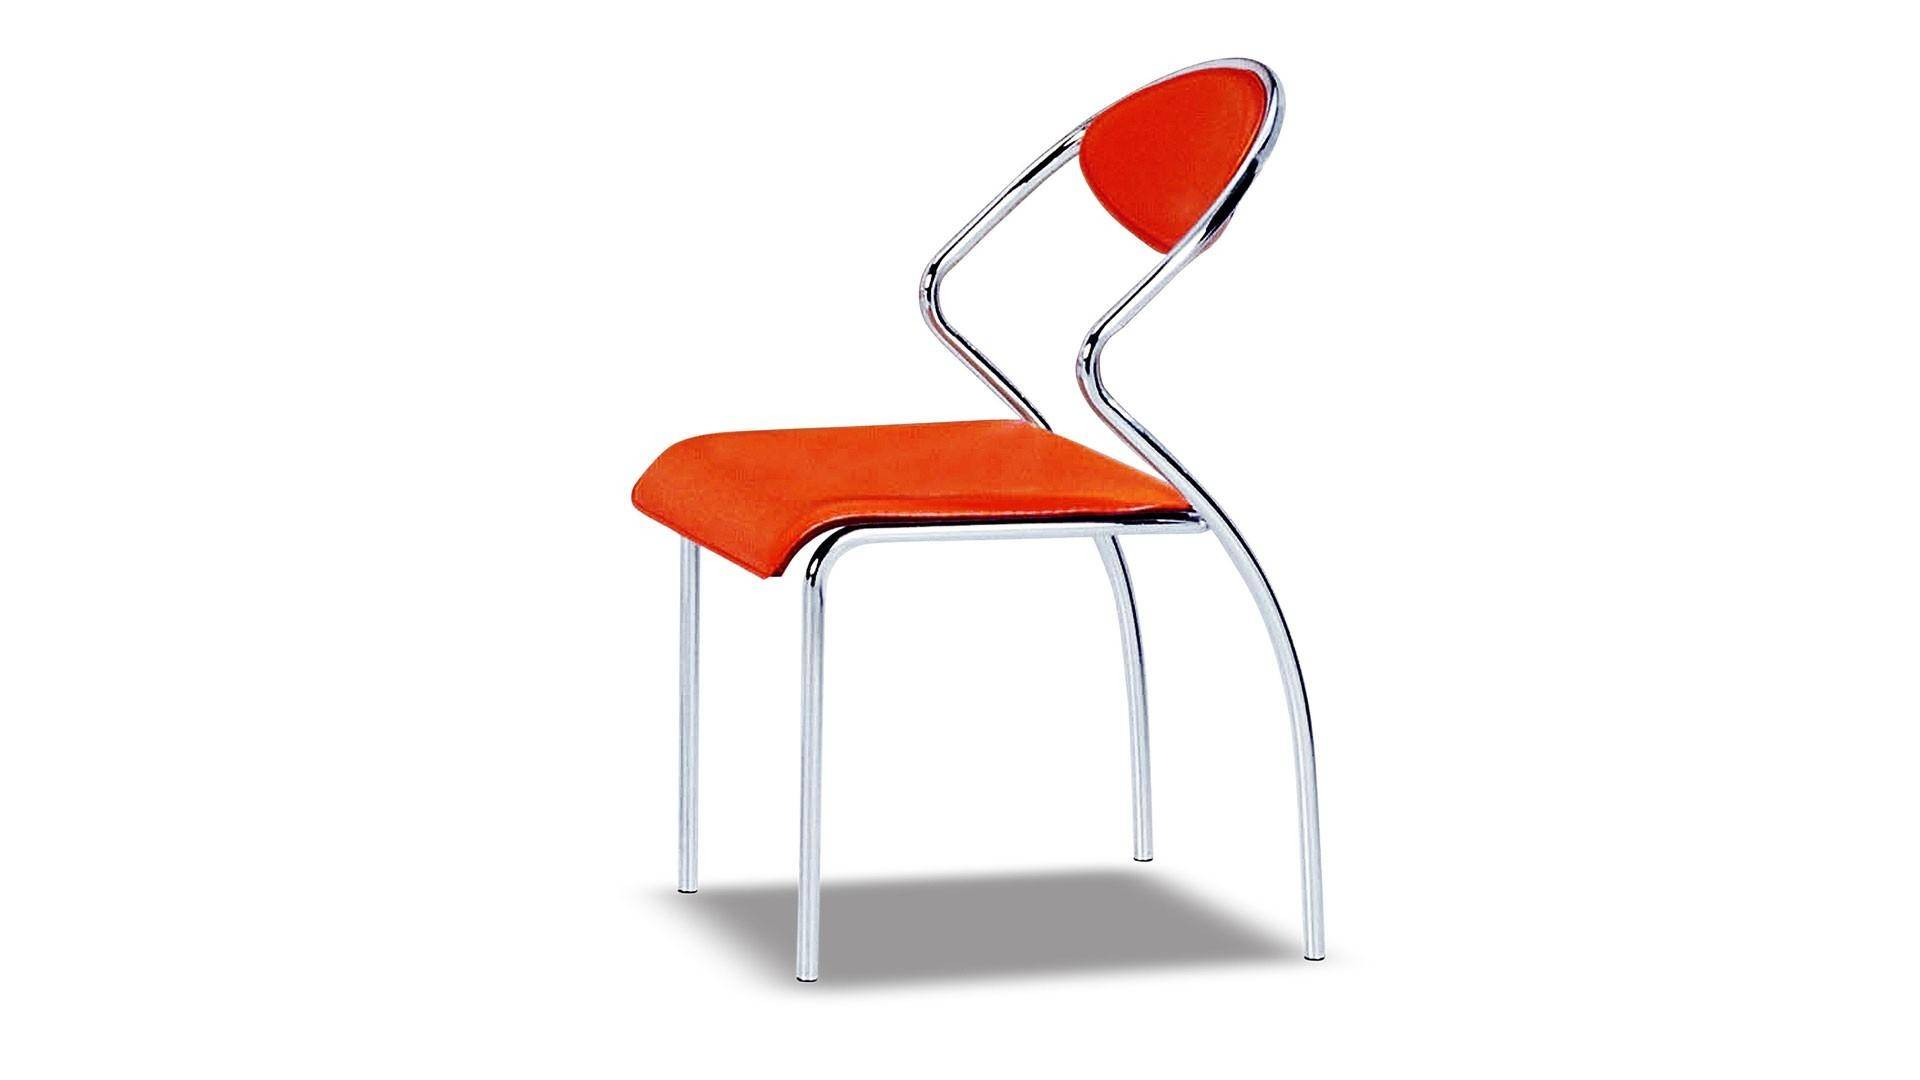 Phenomenal At Home Usa Fortunata Dining Chair 4Pcs Set In Orange Contemporary Style Camellatalisay Diy Chair Ideas Camellatalisaycom